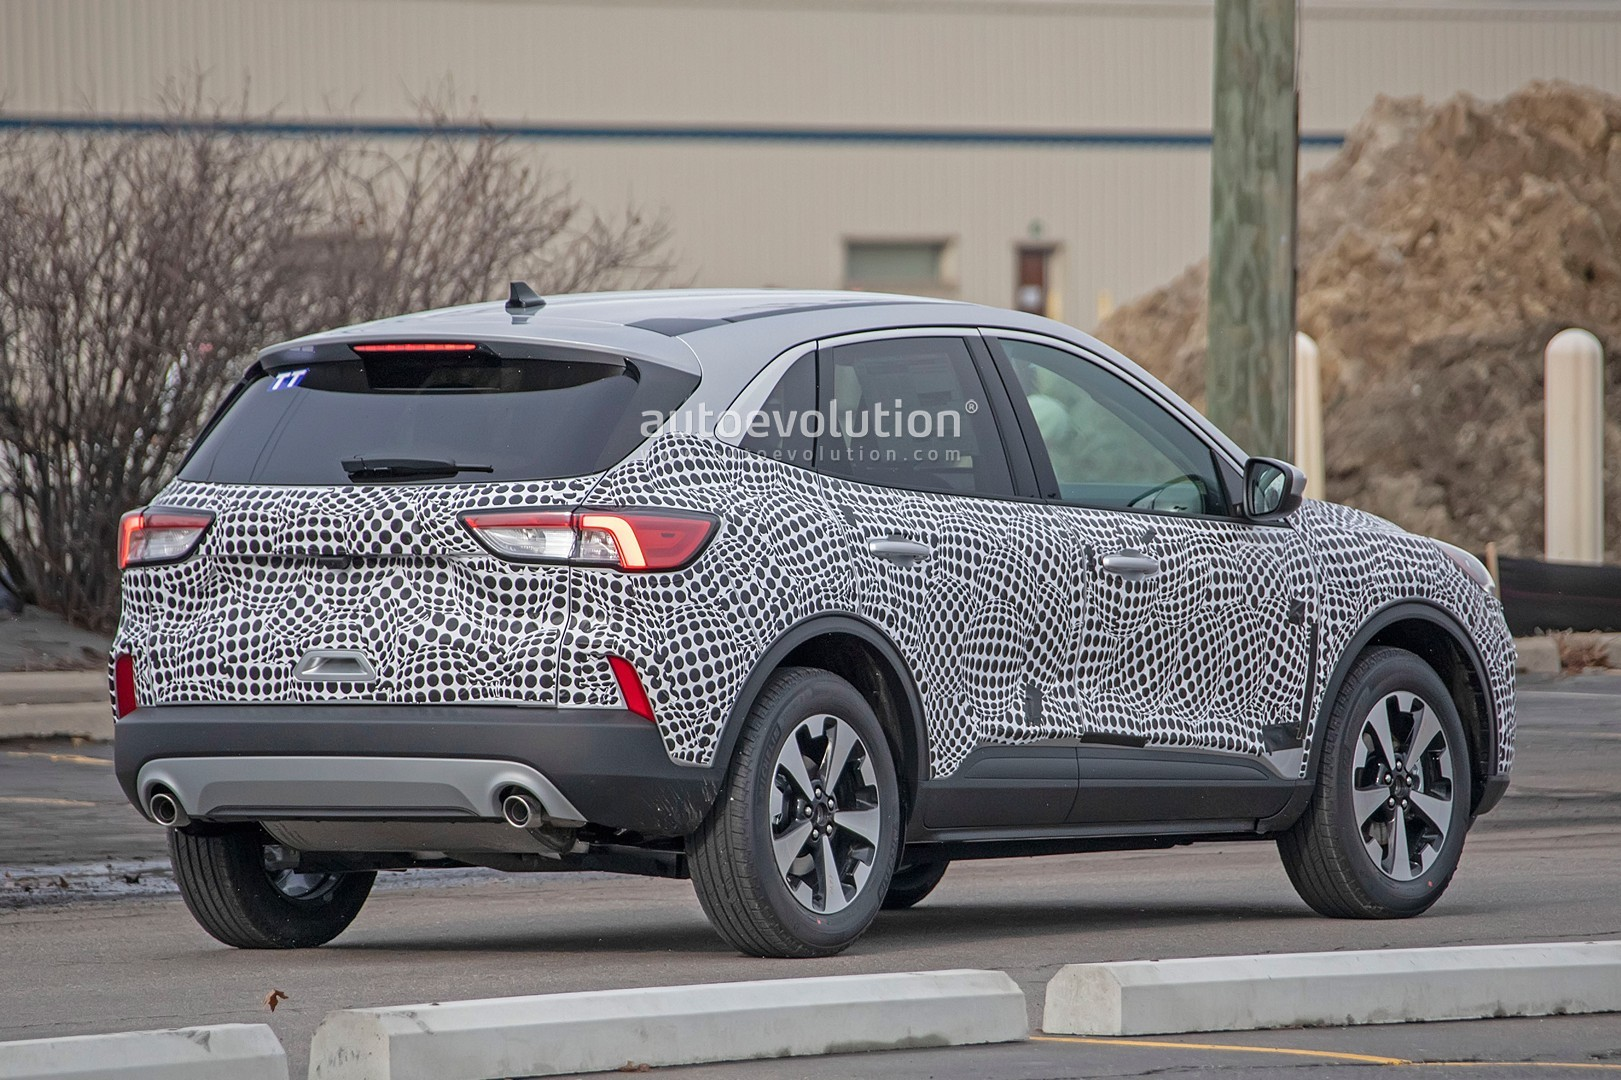 2020 Ford Escape Kuga Spied With Production Body Looks Like Jaguar Focus